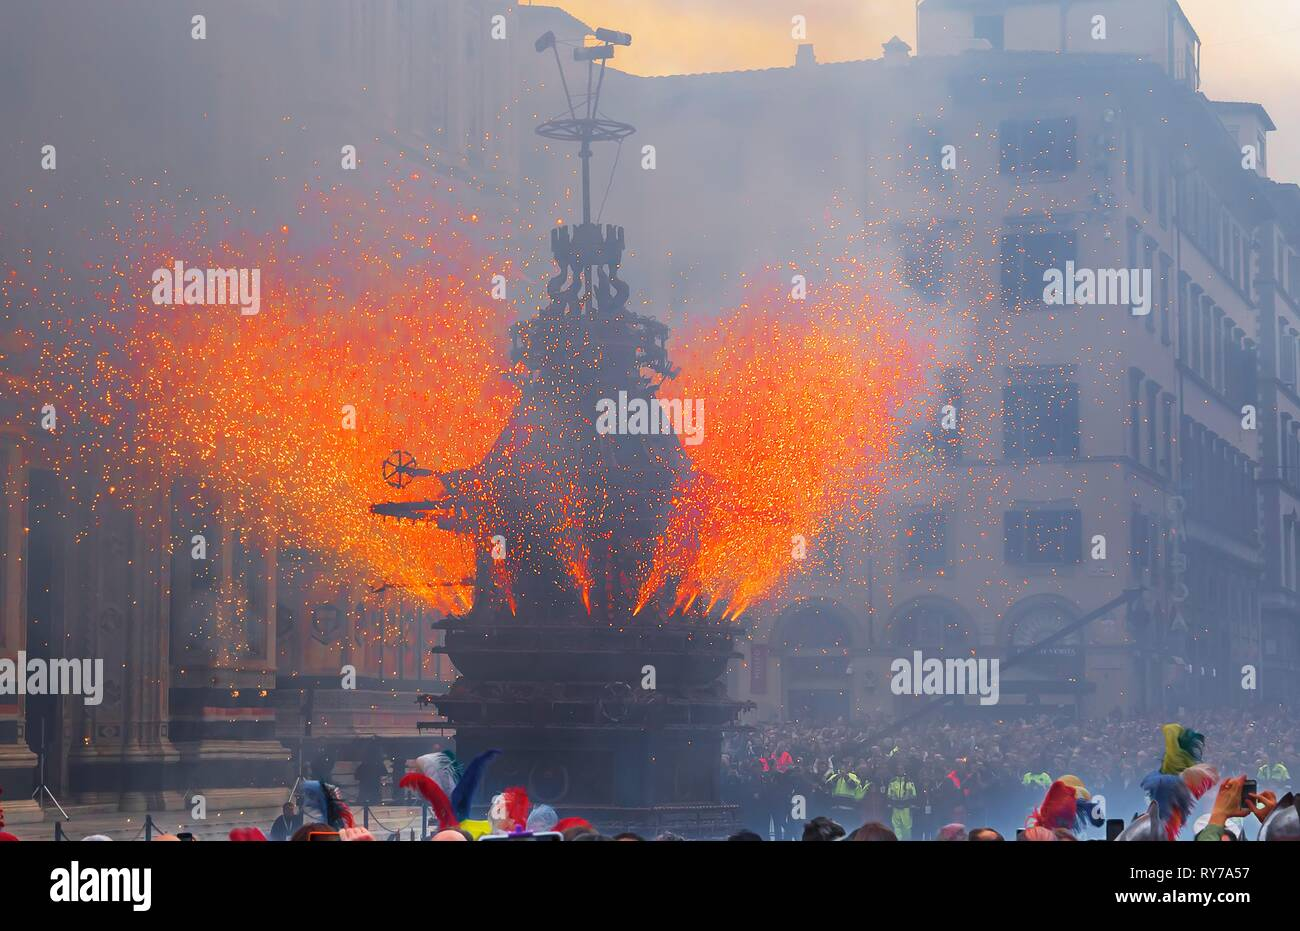 Fire works, Explosion of the Cart, Piazza del Duomo, Scoppio del Carro or Explosion of the Cart festival, Florence, Tuscany - Stock Image